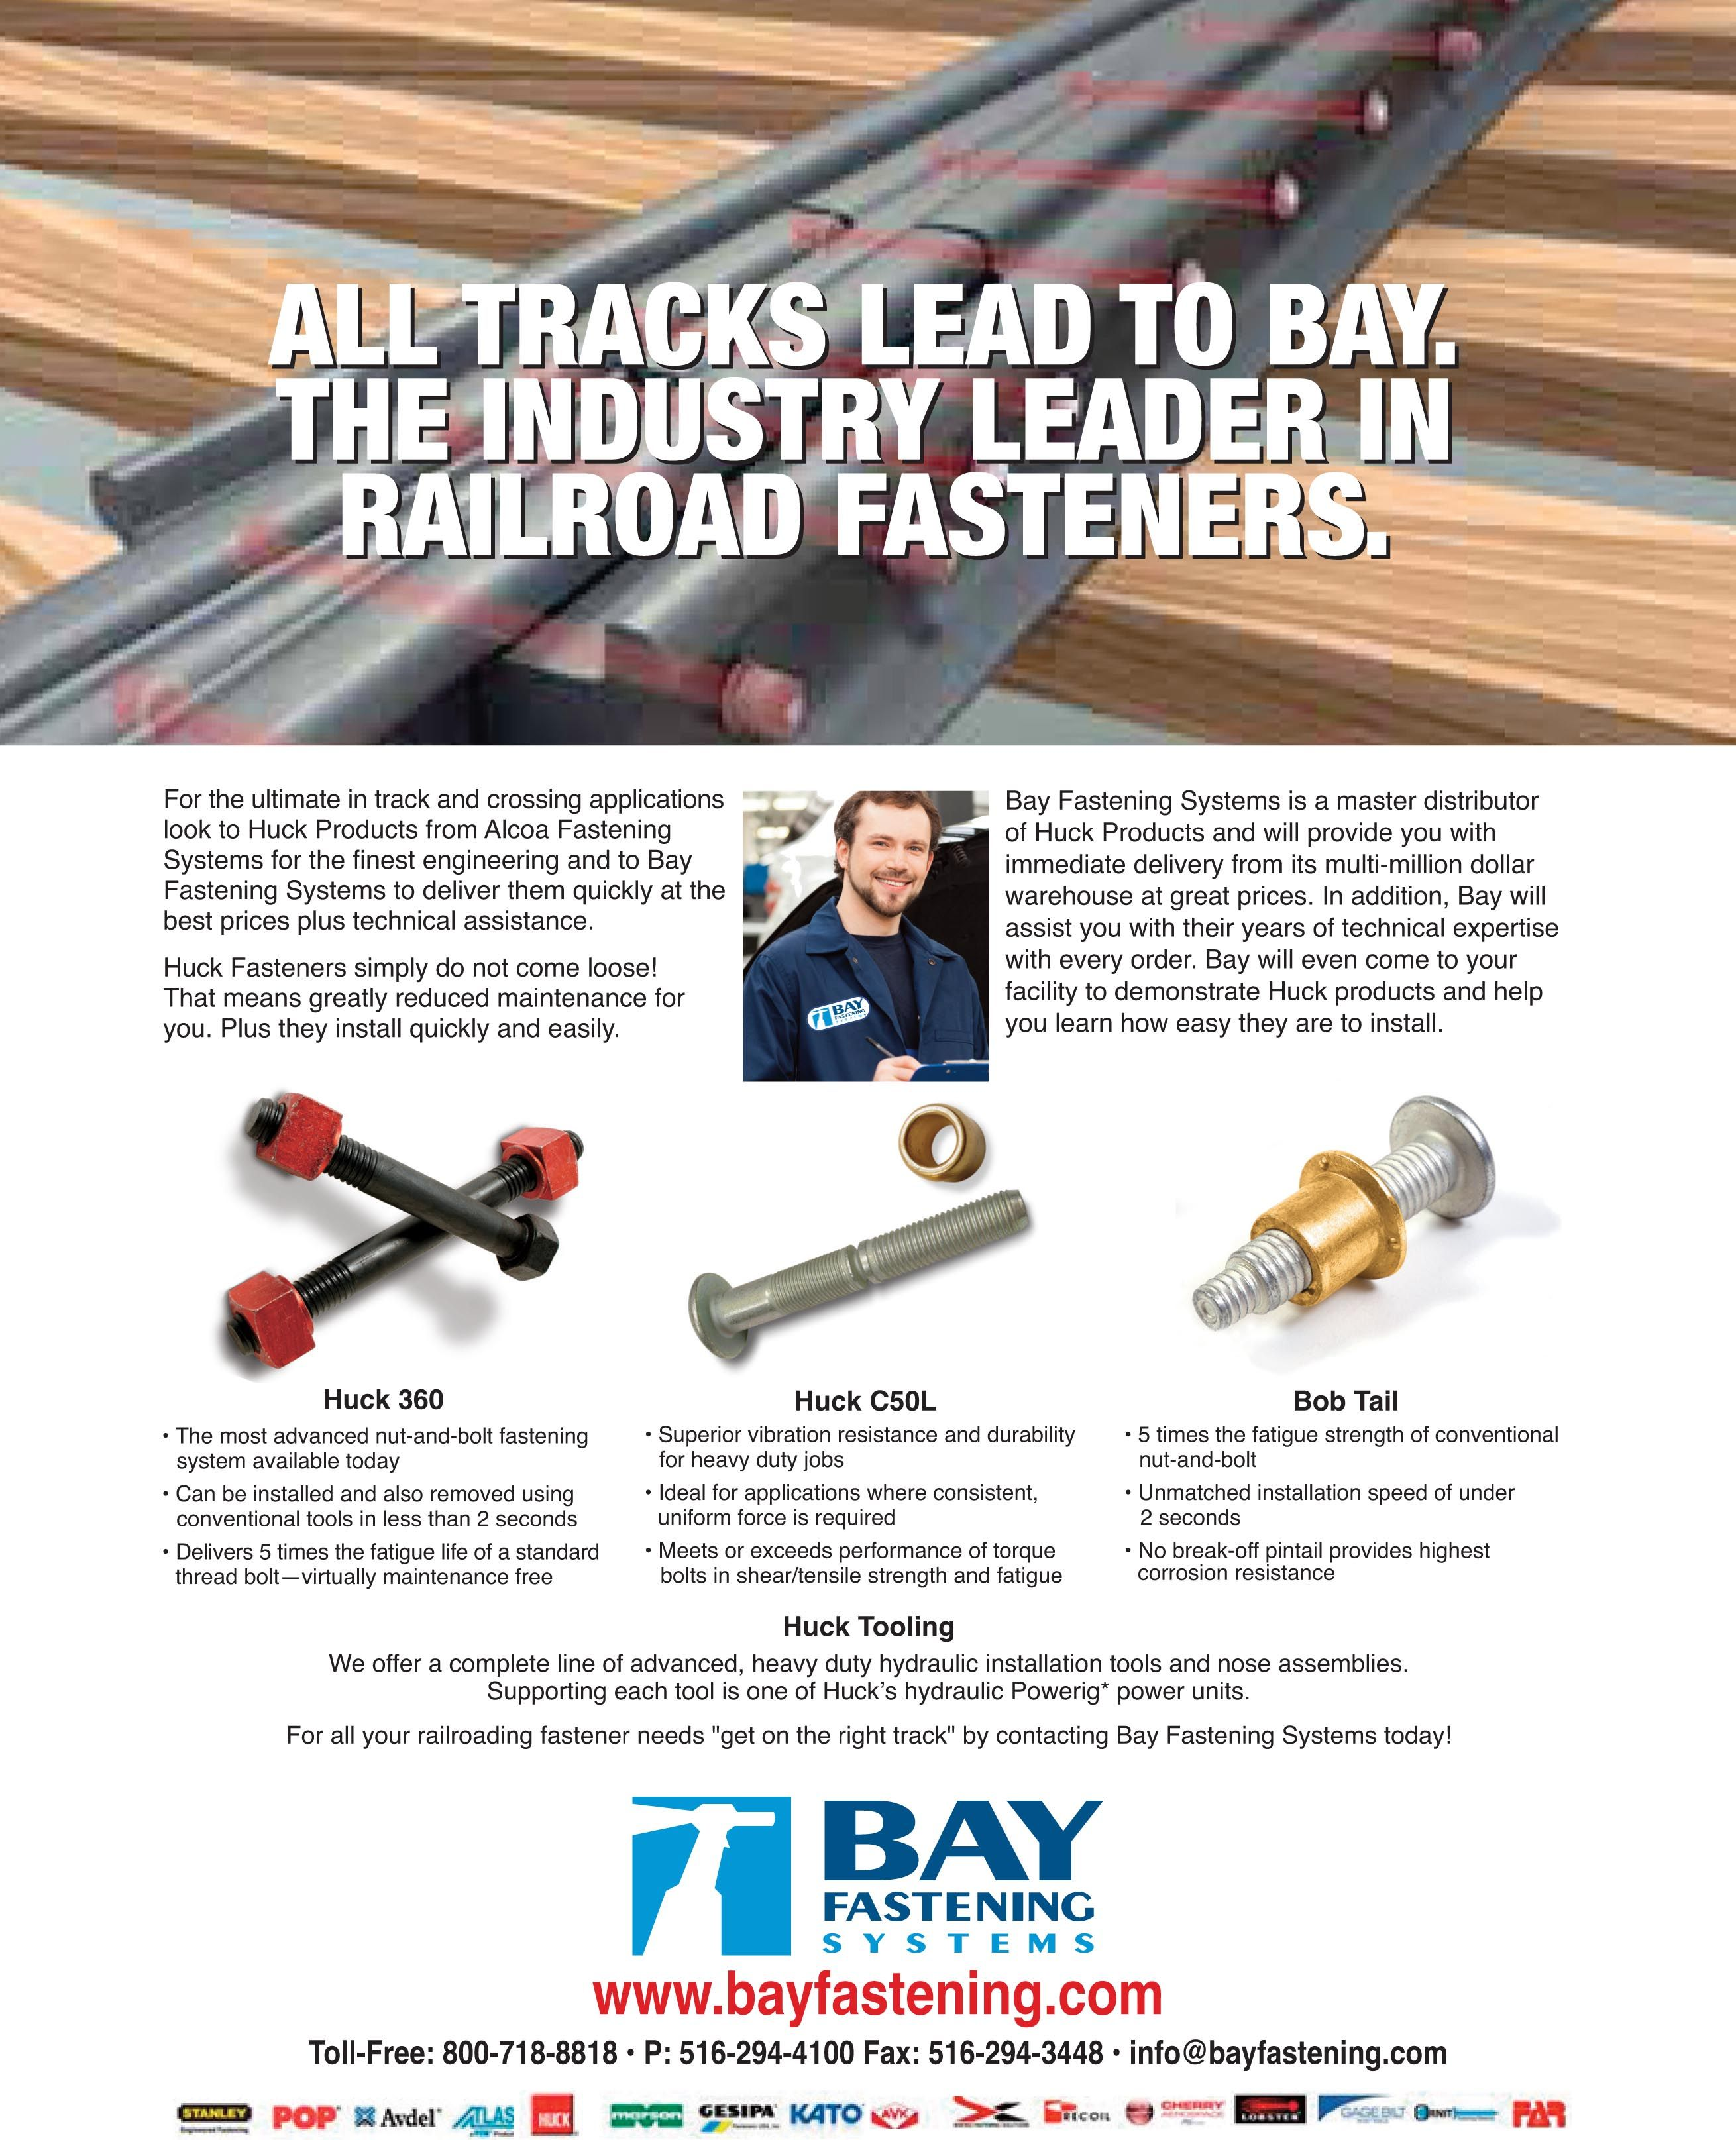 All Tracks Lead To Bay Fastening Systems The Industry Leader In Railroad Fasteners Www Bayfastening Com Fasteners Tools Systems Engineering